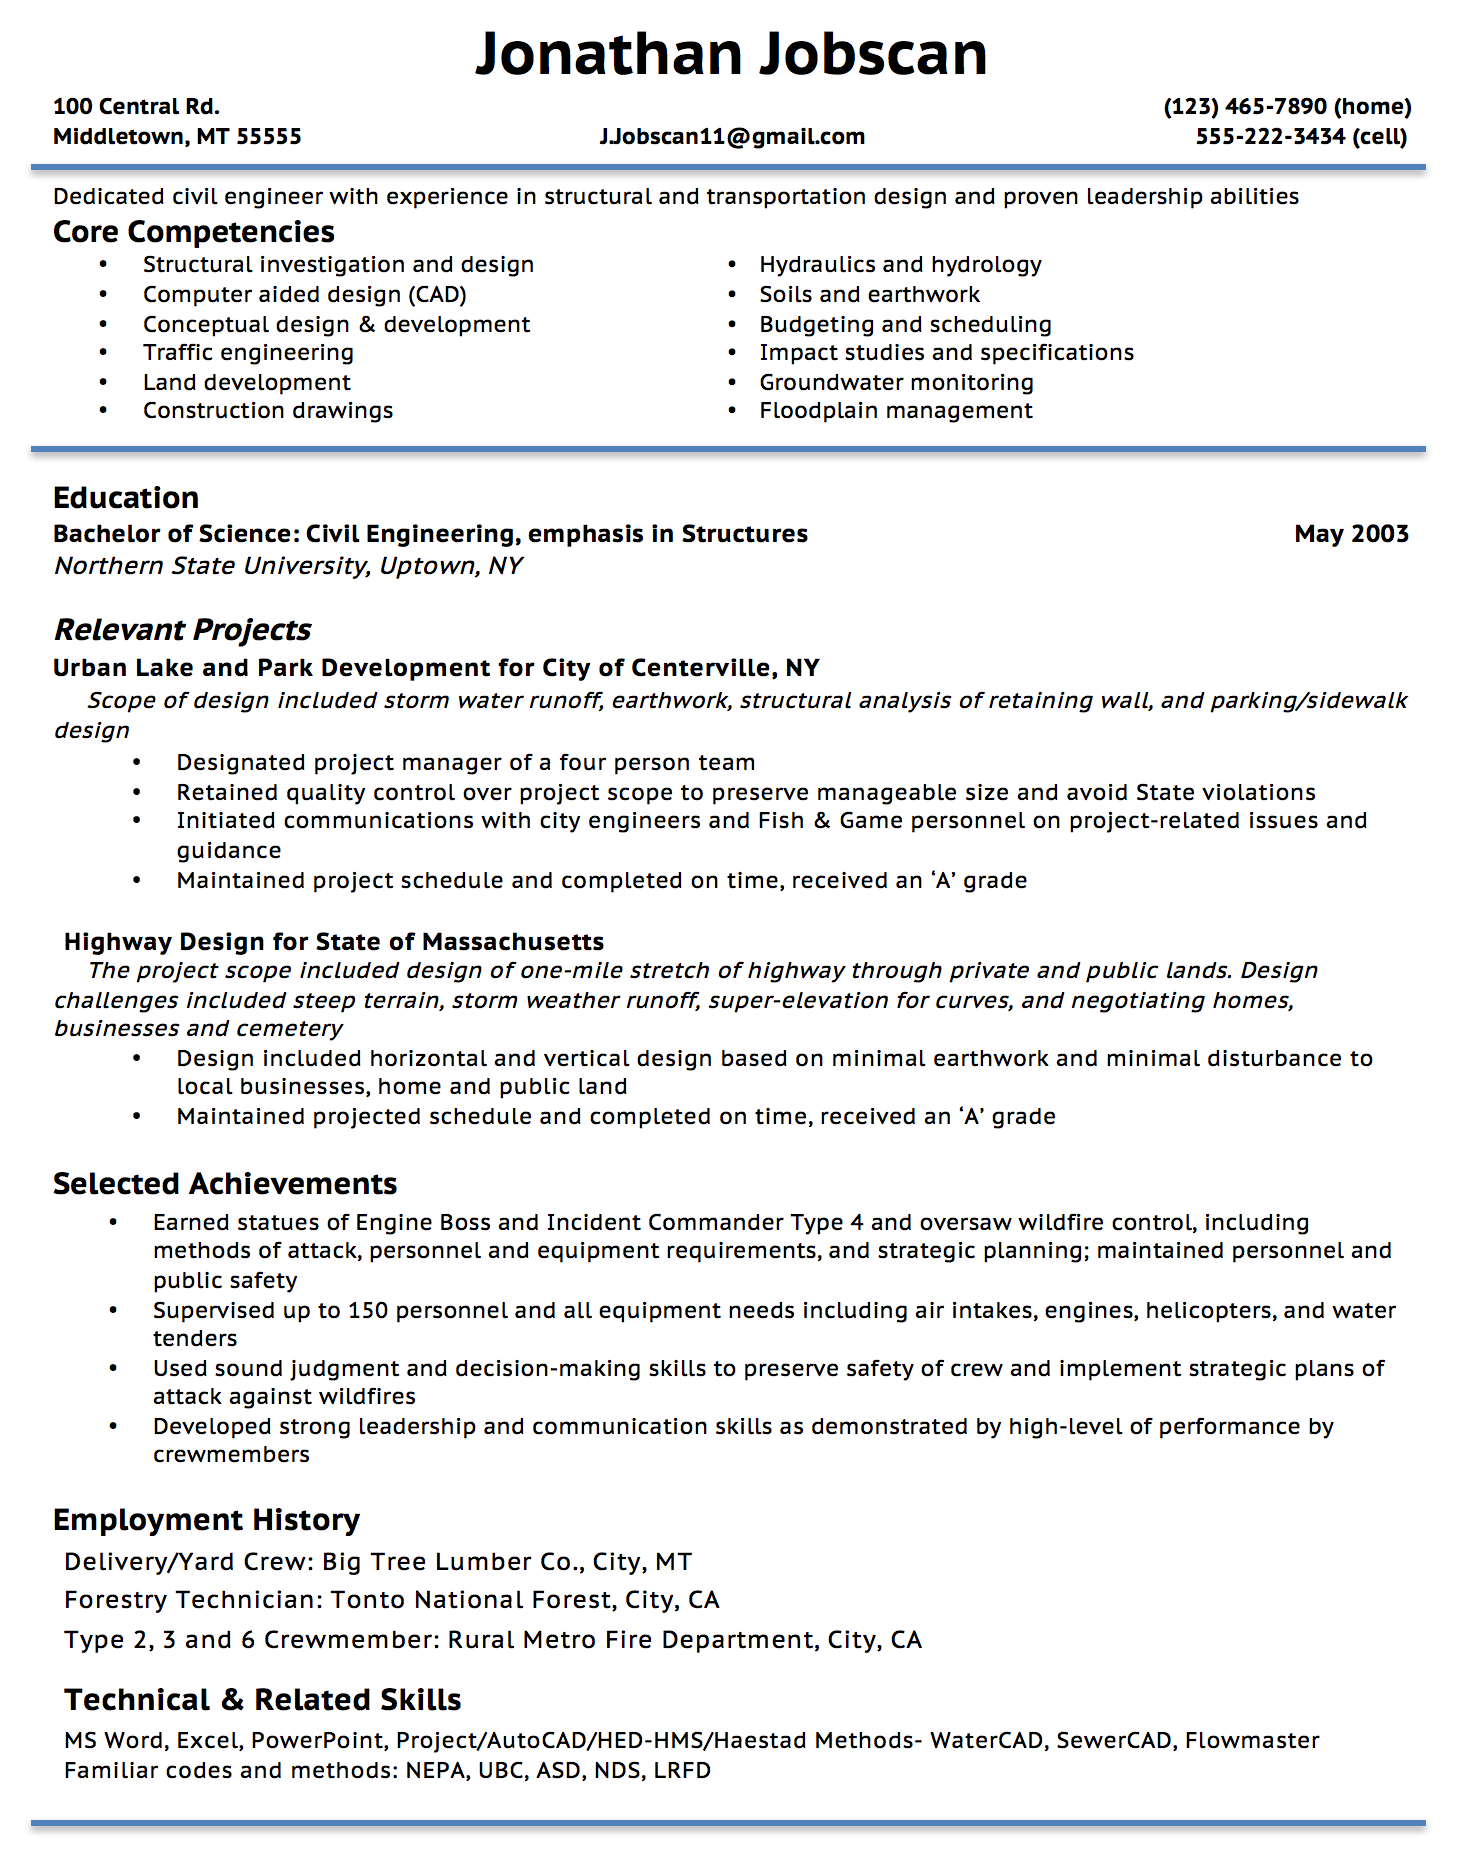 Opposenewapstandardsus  Unusual Resume Writing Guide  Jobscan With Lovable Example Of A Functional Resume Format With Adorable Physical Therapist Resume Also Objective For Resume Example In Addition Plain Text Resume And Vba On Error Resume Next As Well As Graphic Design Resume Template Additionally Modeling Resume From Jobscanco With Opposenewapstandardsus  Lovable Resume Writing Guide  Jobscan With Adorable Example Of A Functional Resume Format And Unusual Physical Therapist Resume Also Objective For Resume Example In Addition Plain Text Resume From Jobscanco